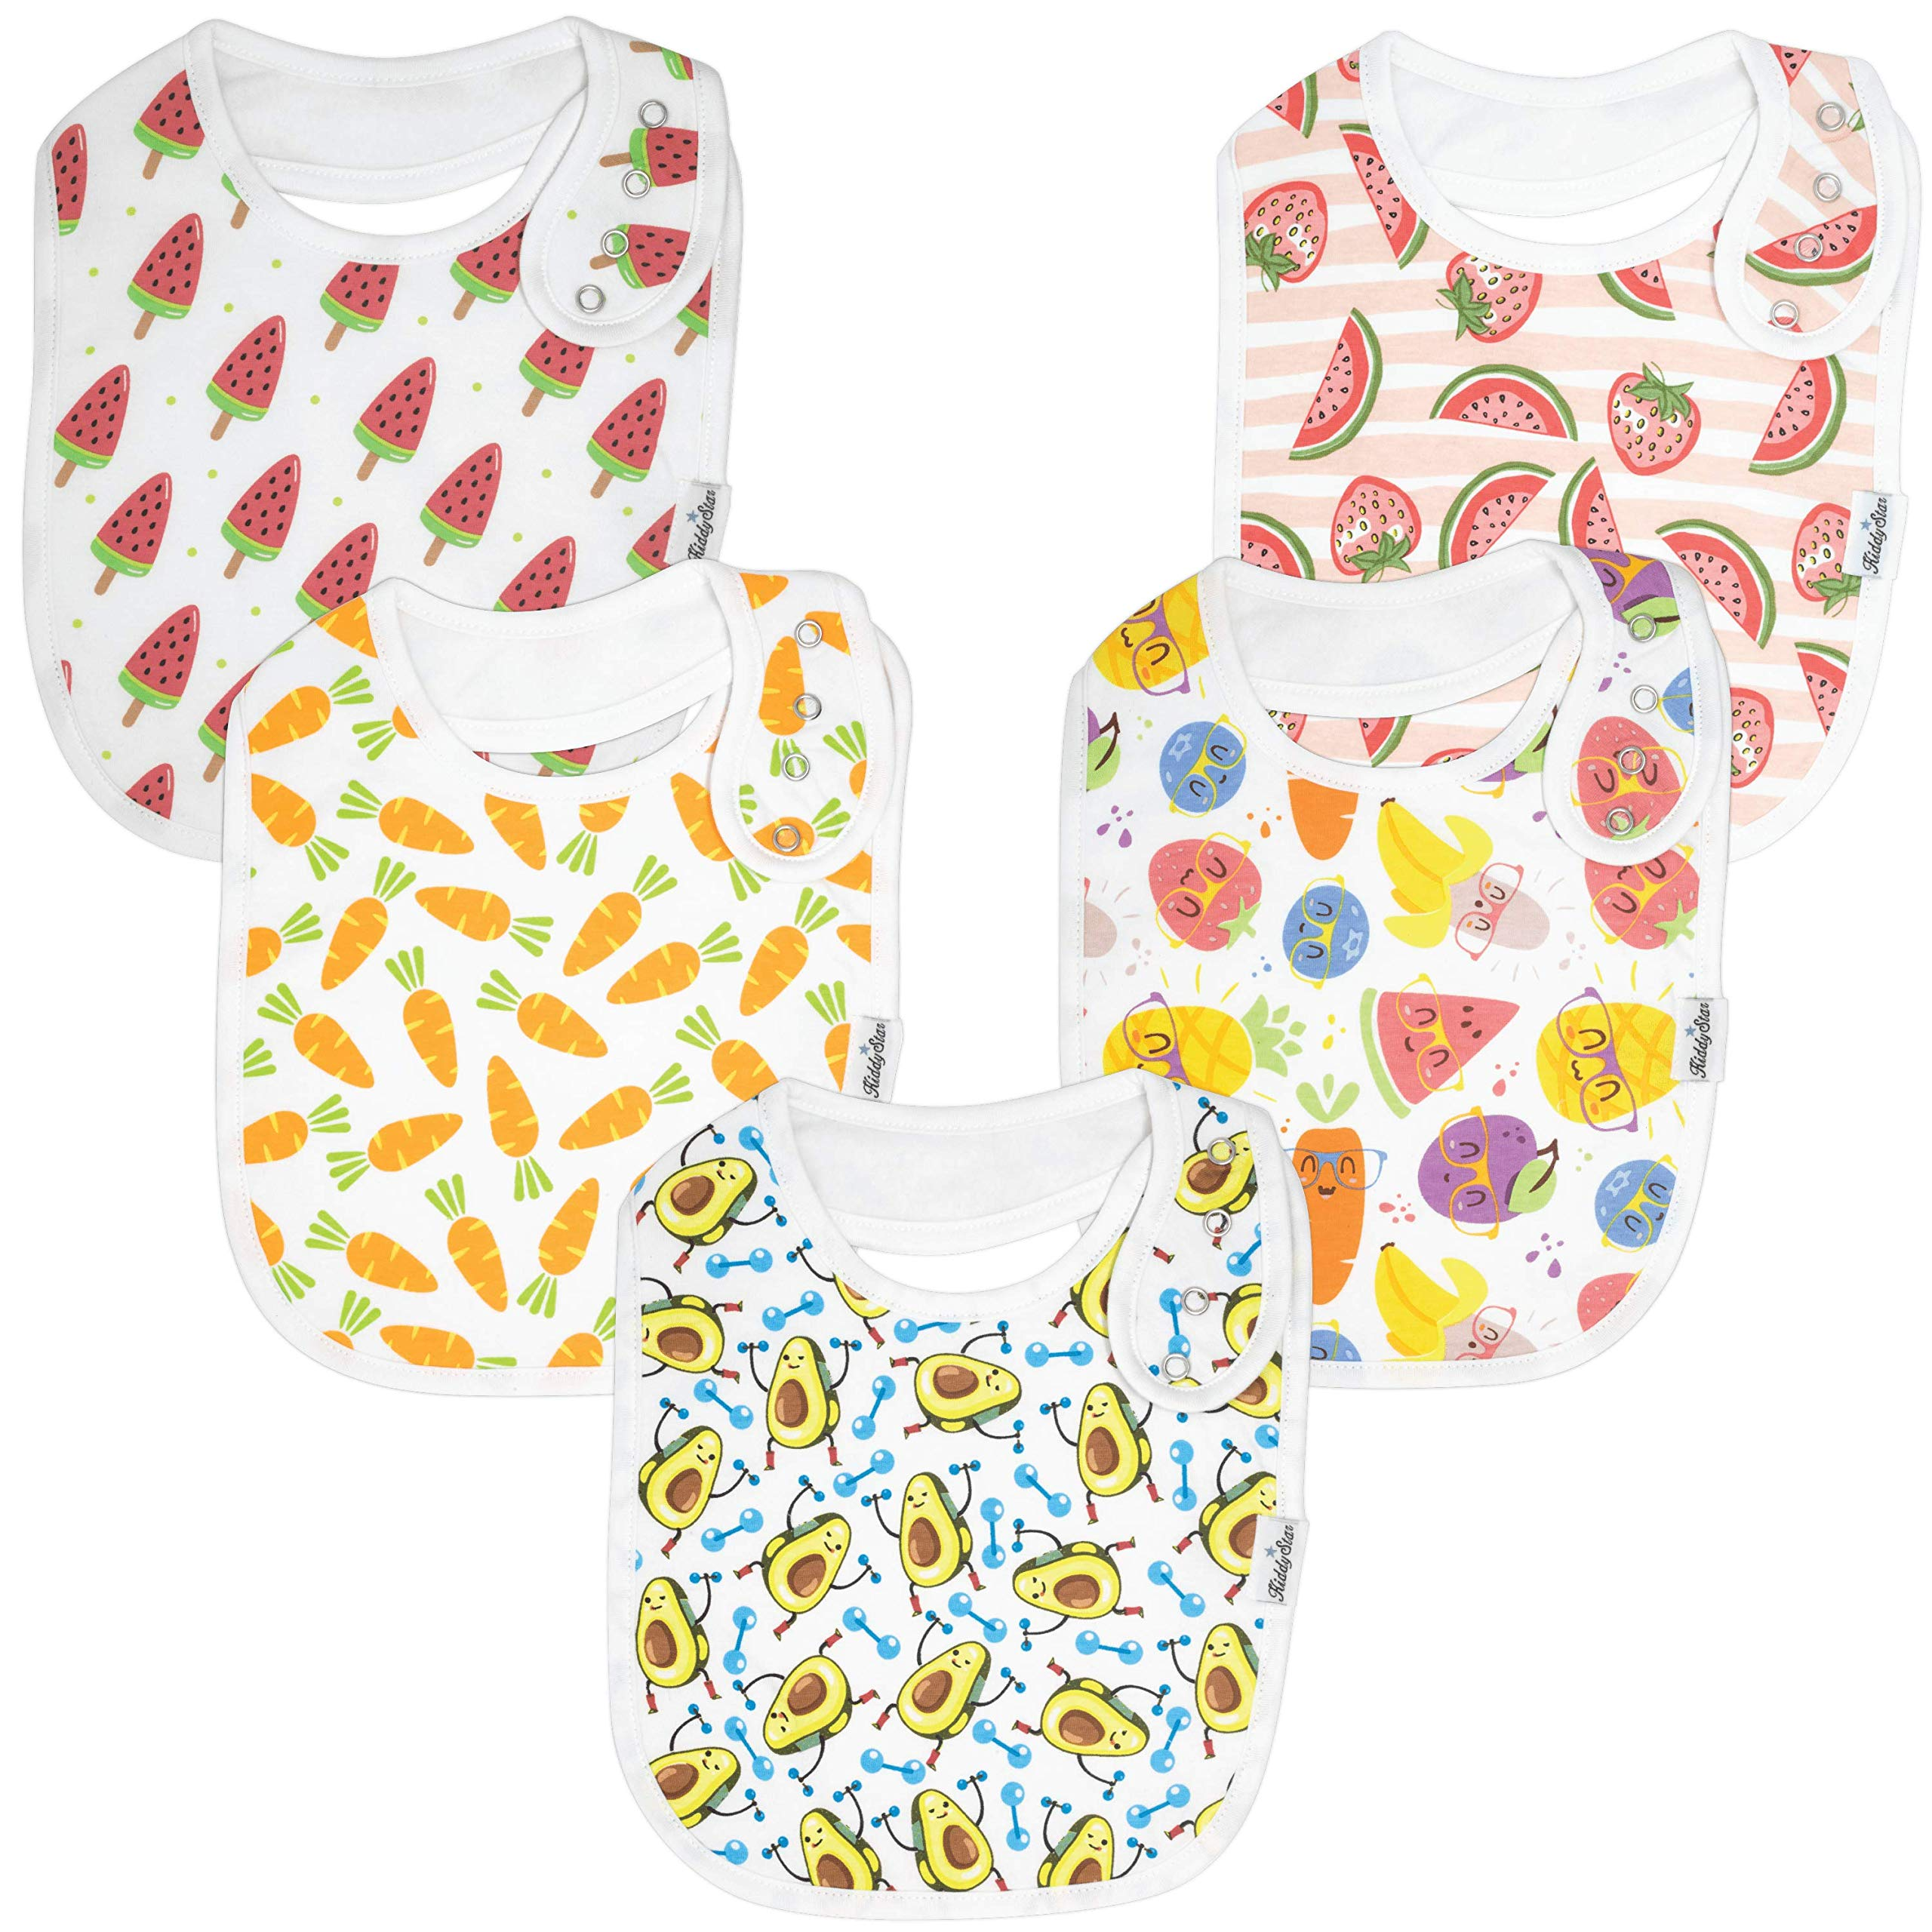 Premium, Organic Cotton Toddler Bibs, Unisex 5-Pack Extra Large Baby Bibs for Boys and Girls by KiddyStar, Baby Shower Gift for Feeding, Drooling, Teething, Adjustable 5 Positions (Carrots & 'Cados) by KiddyStar